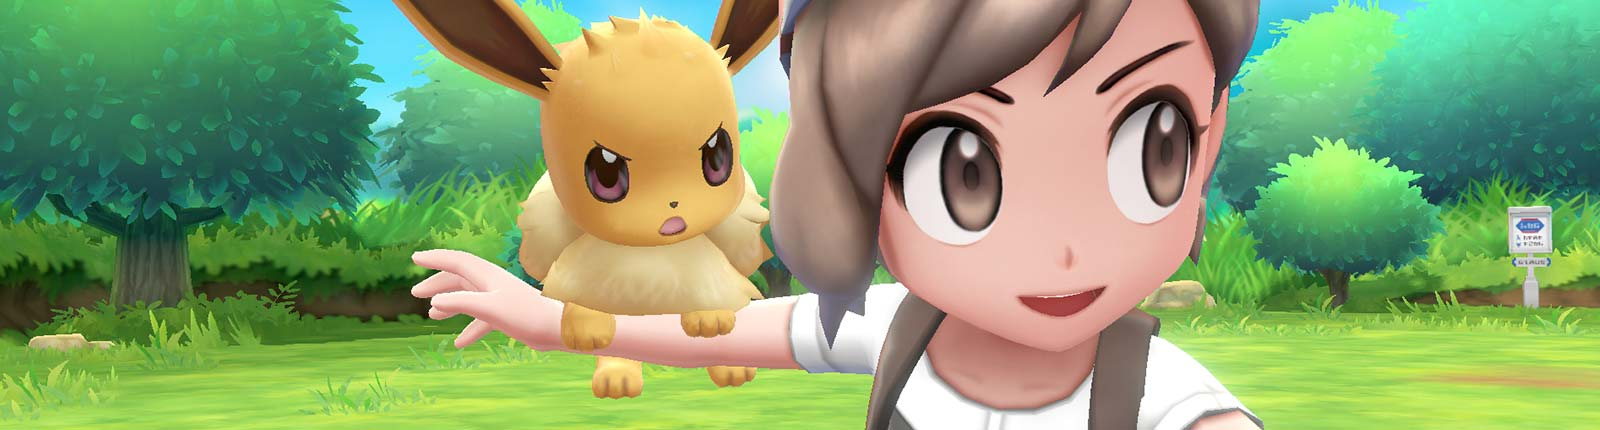 Pokémon: Let's Go, Pikachu! und Let's Go, Evoli! Review